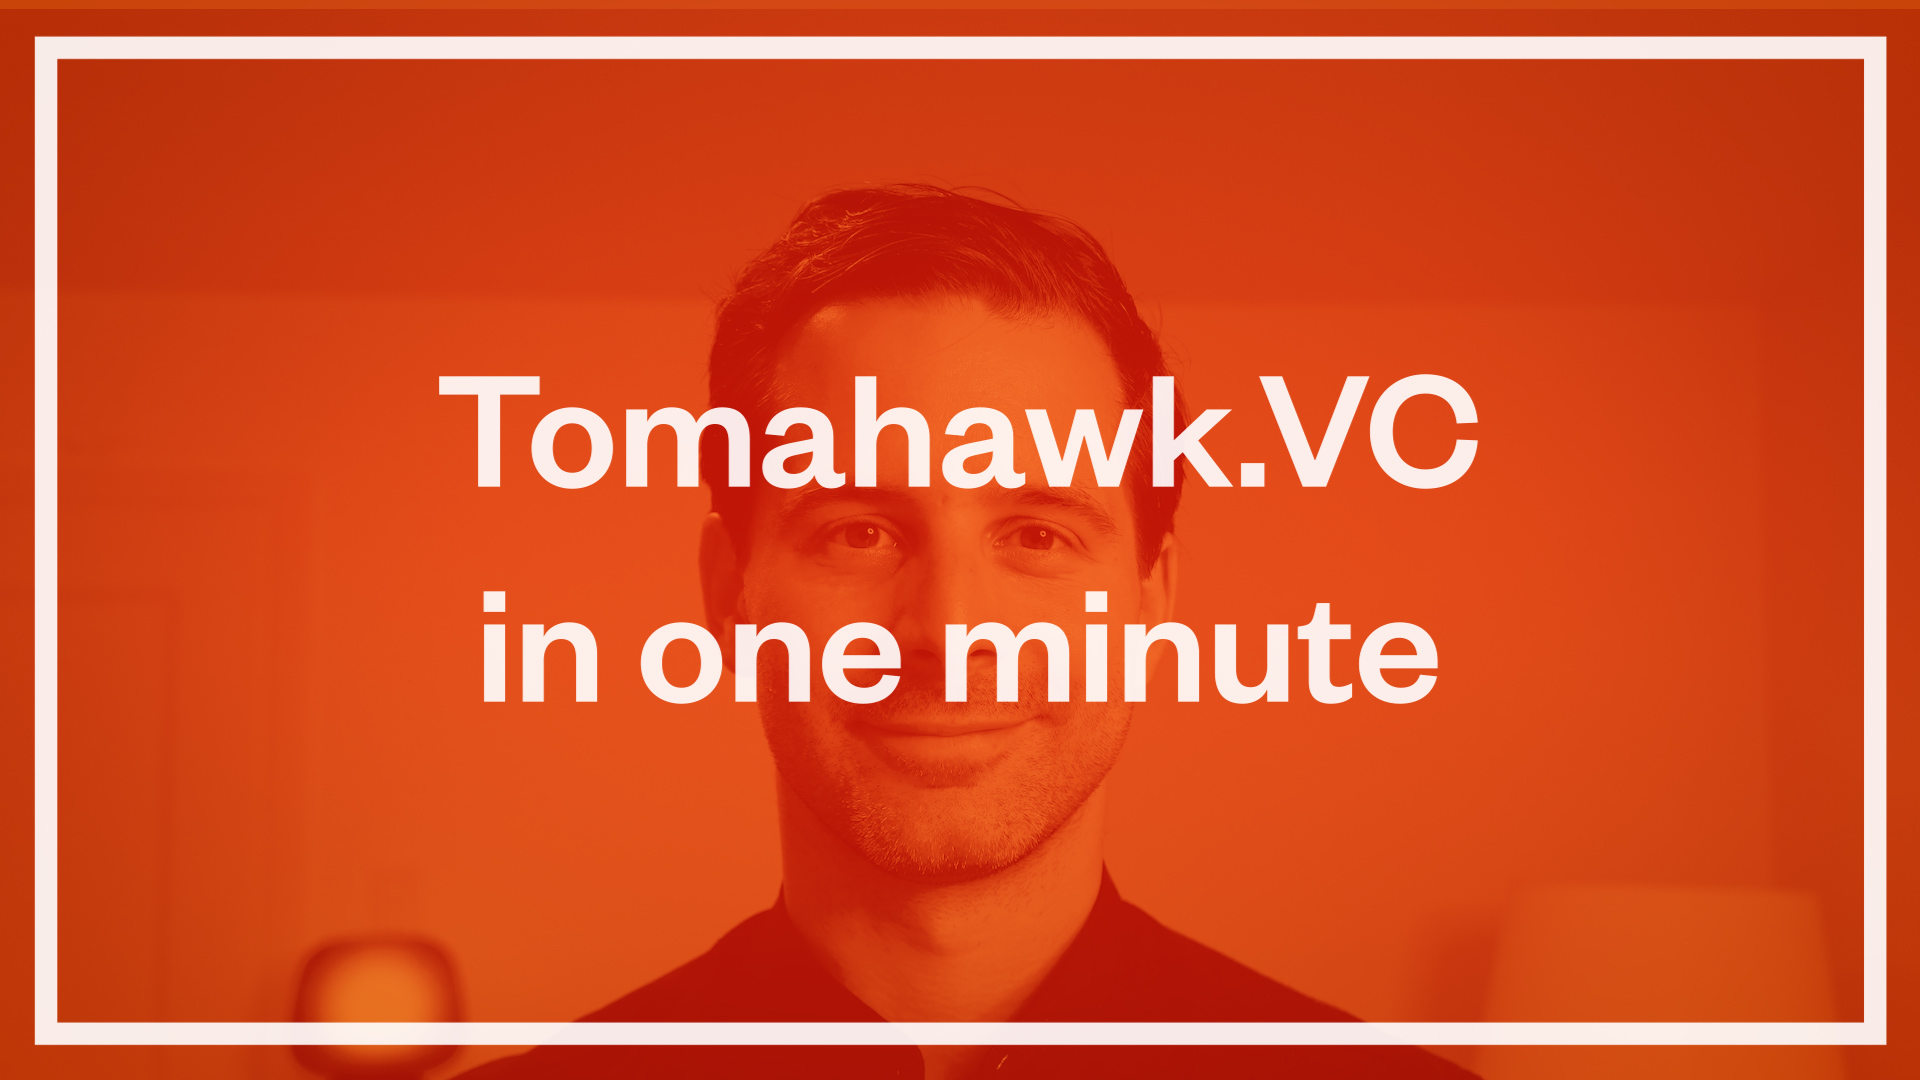 Tomahawk.VC in 1 Minute